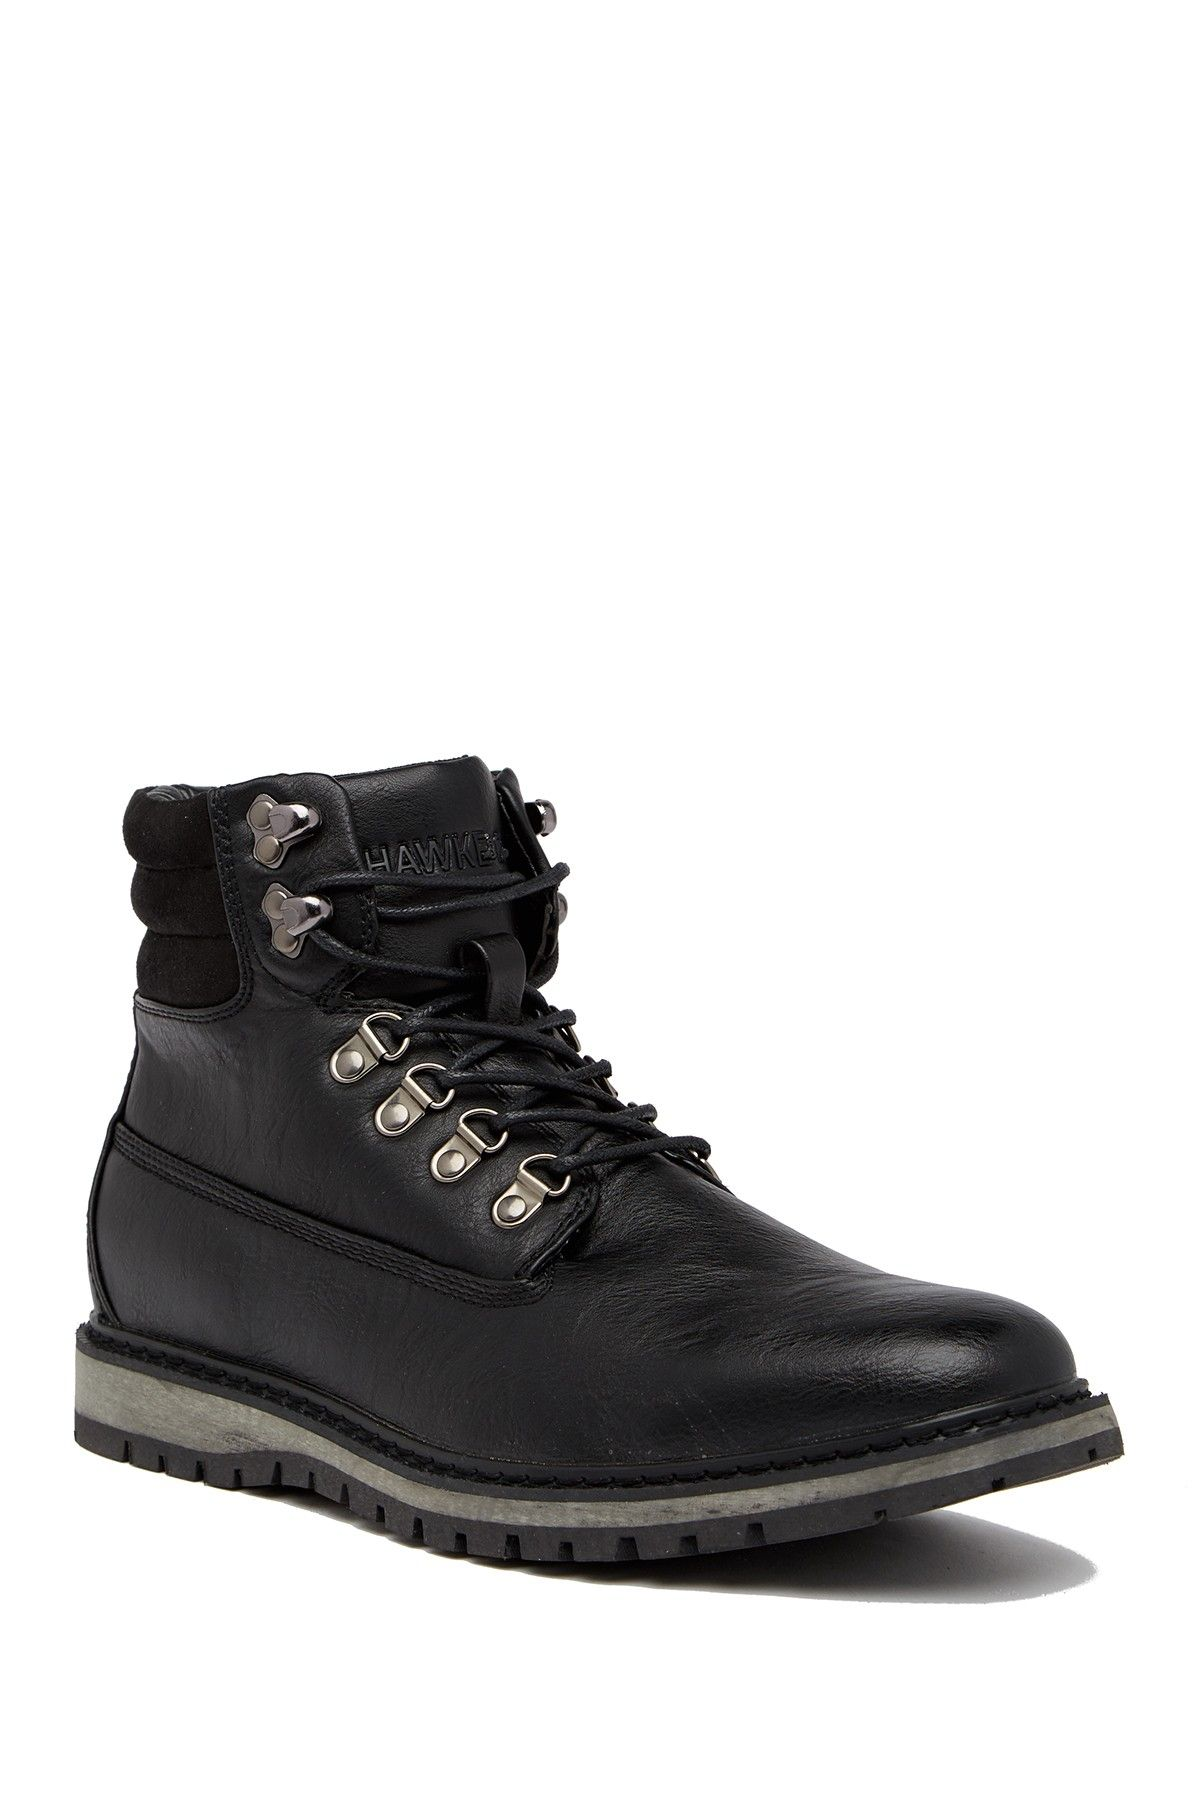 20981f1b916 Hawke   Co Raleigh Leather Boot